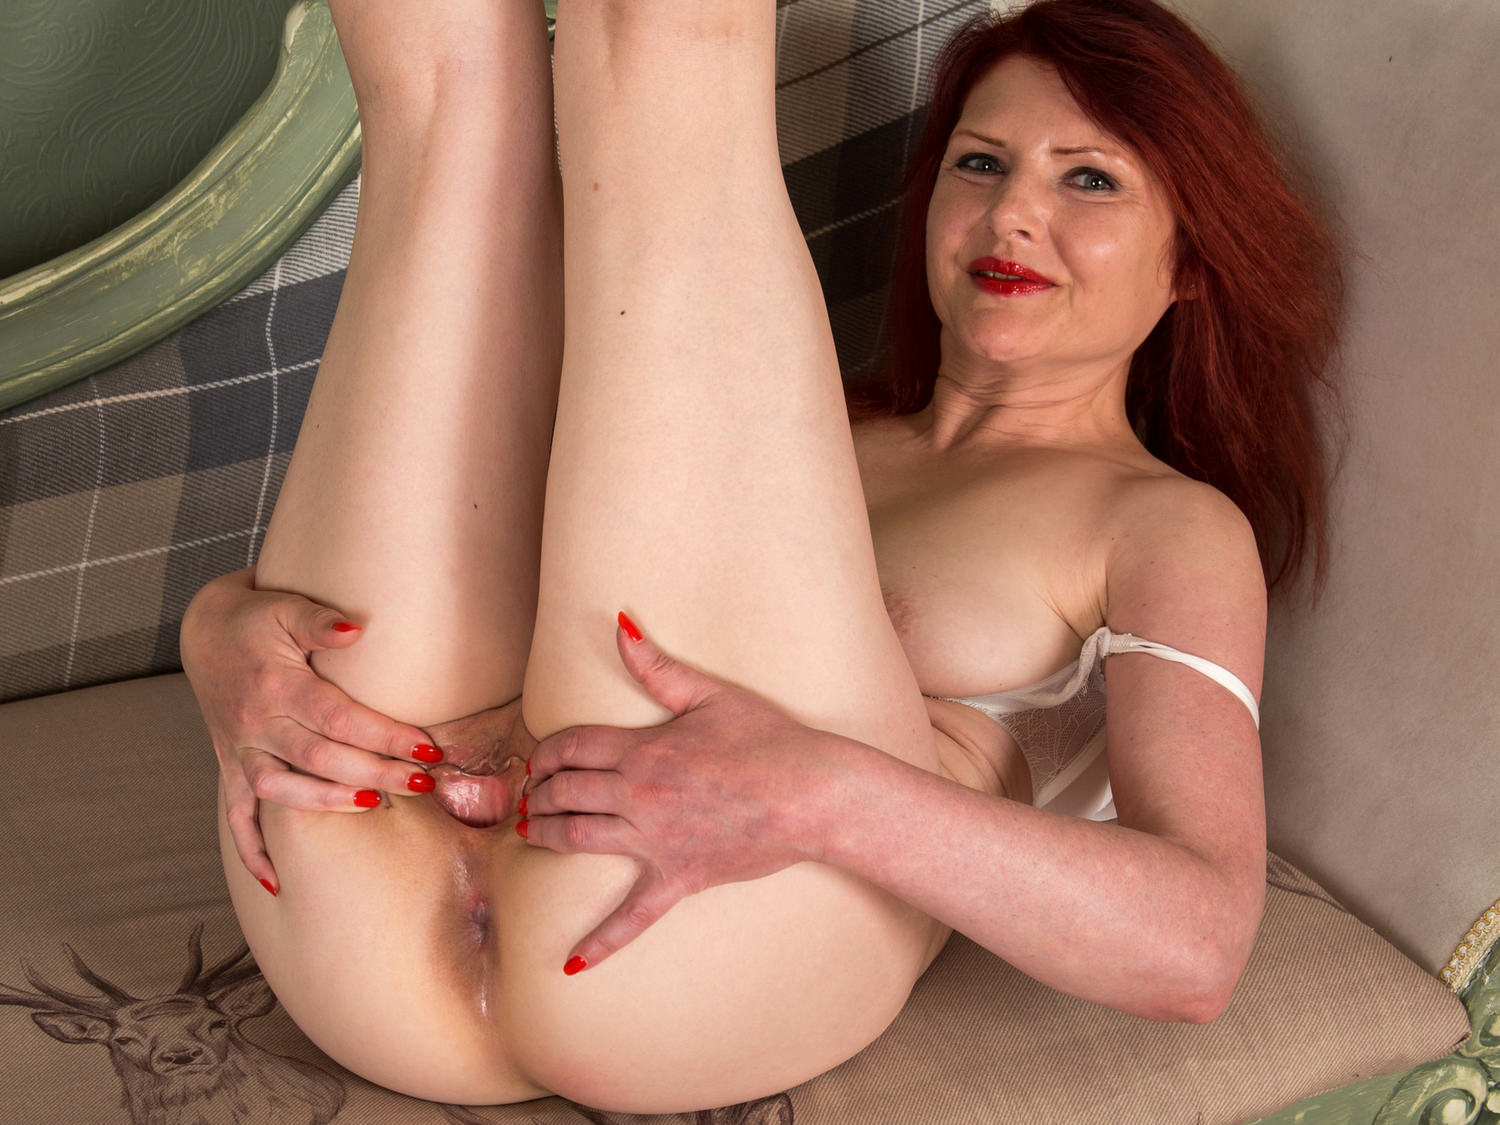 Close-ups,Matures,Redheads,Grannies,Saggy Tits,Anilos,HD Videos,Mature Solo,Solo,Redhead